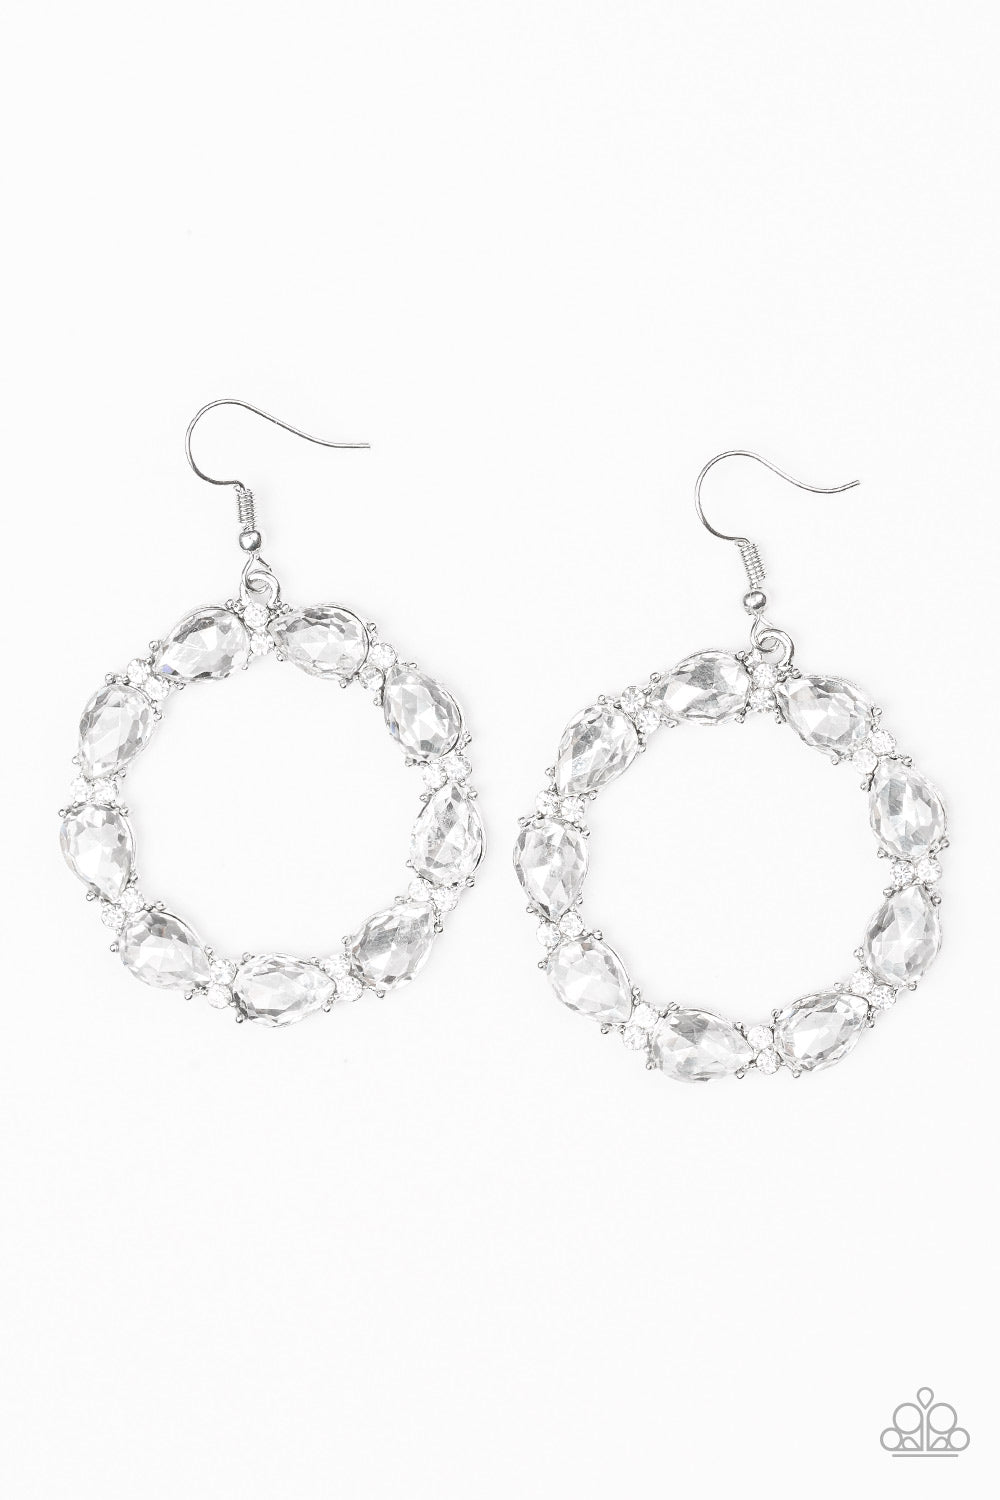 Ring Around The Rhinestones - White Bling Earrings - The Paparazzi Fox